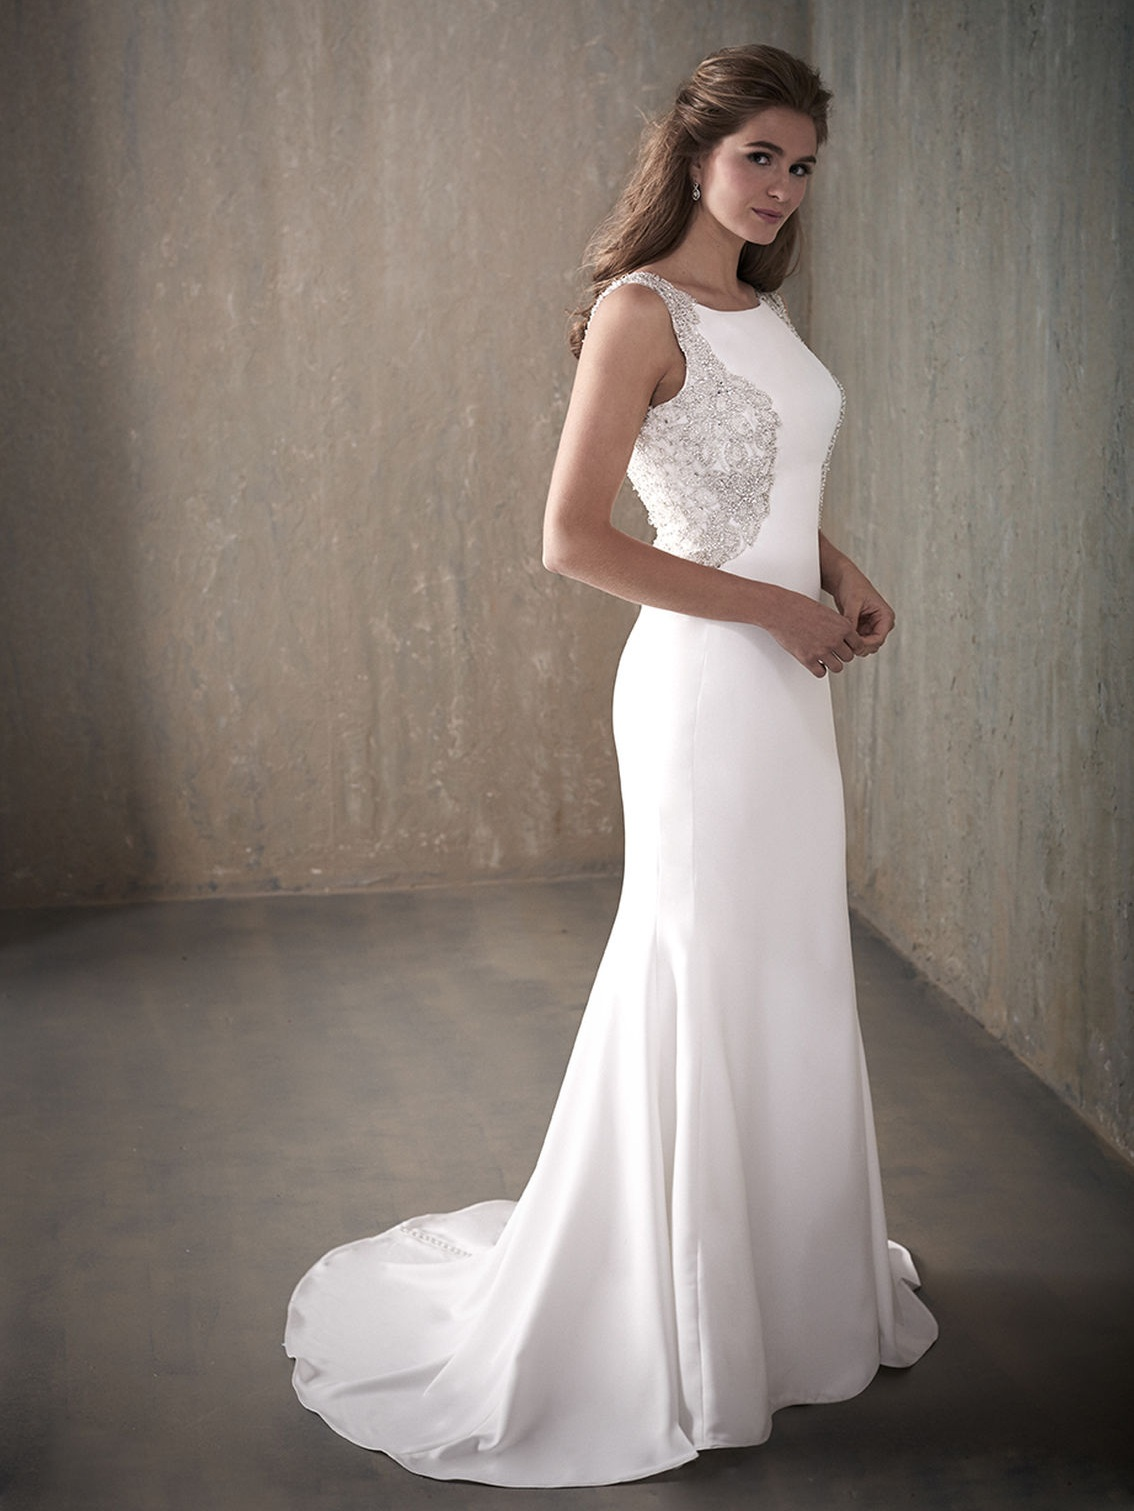 Adrianna Papell 31029 Ivory // Retail Price $1164 | Our Price $895